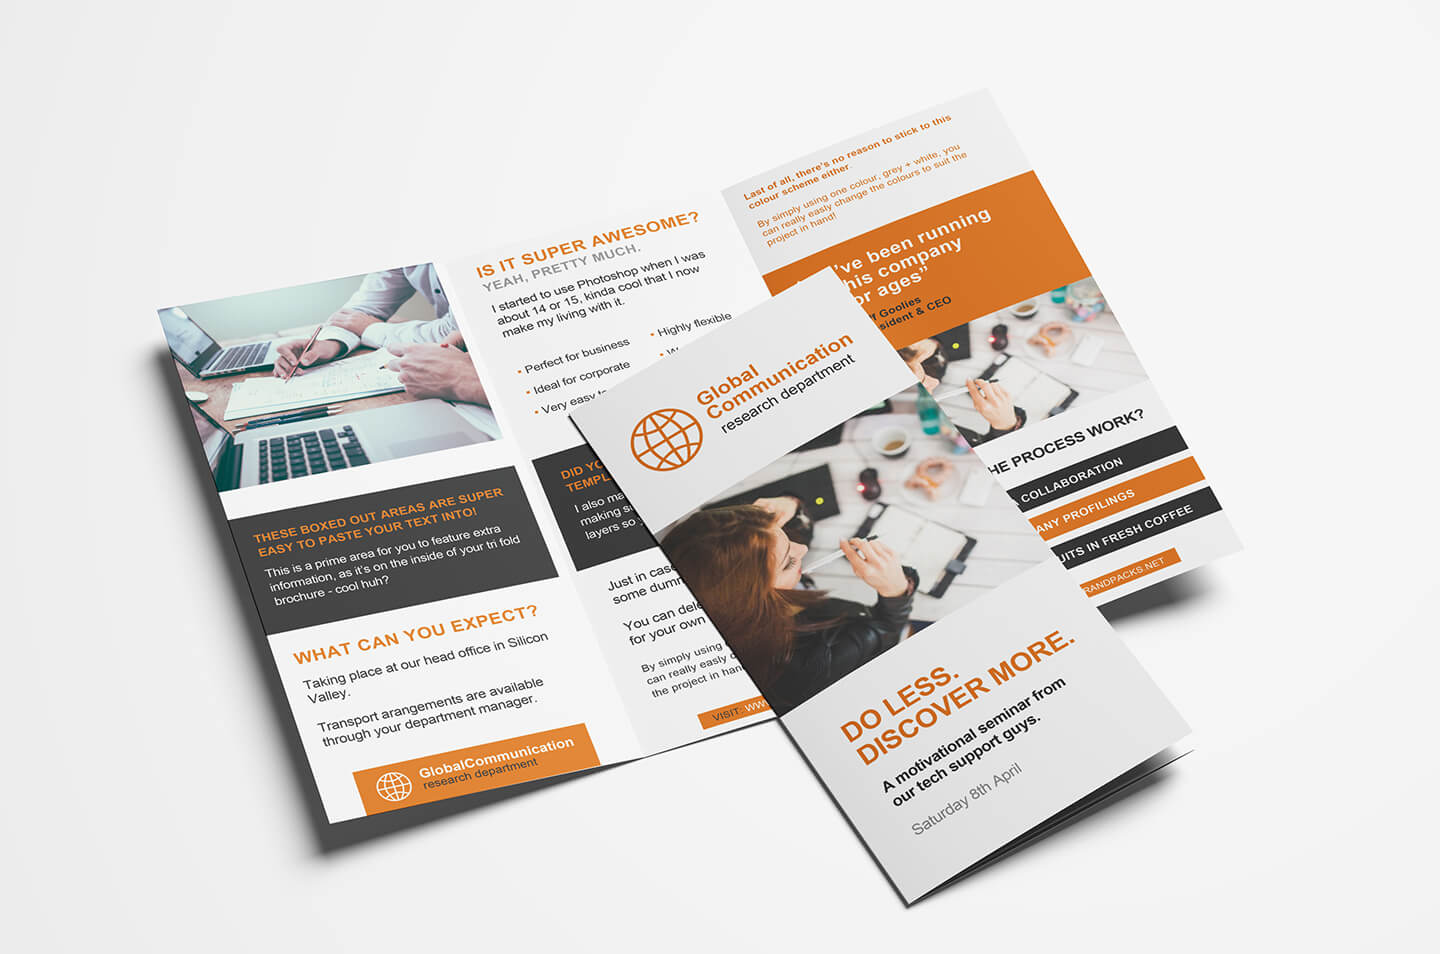 Free 3 Fold Brochure Template For Photoshop & Illustrator Within Free Illustrator Brochure Templates Download